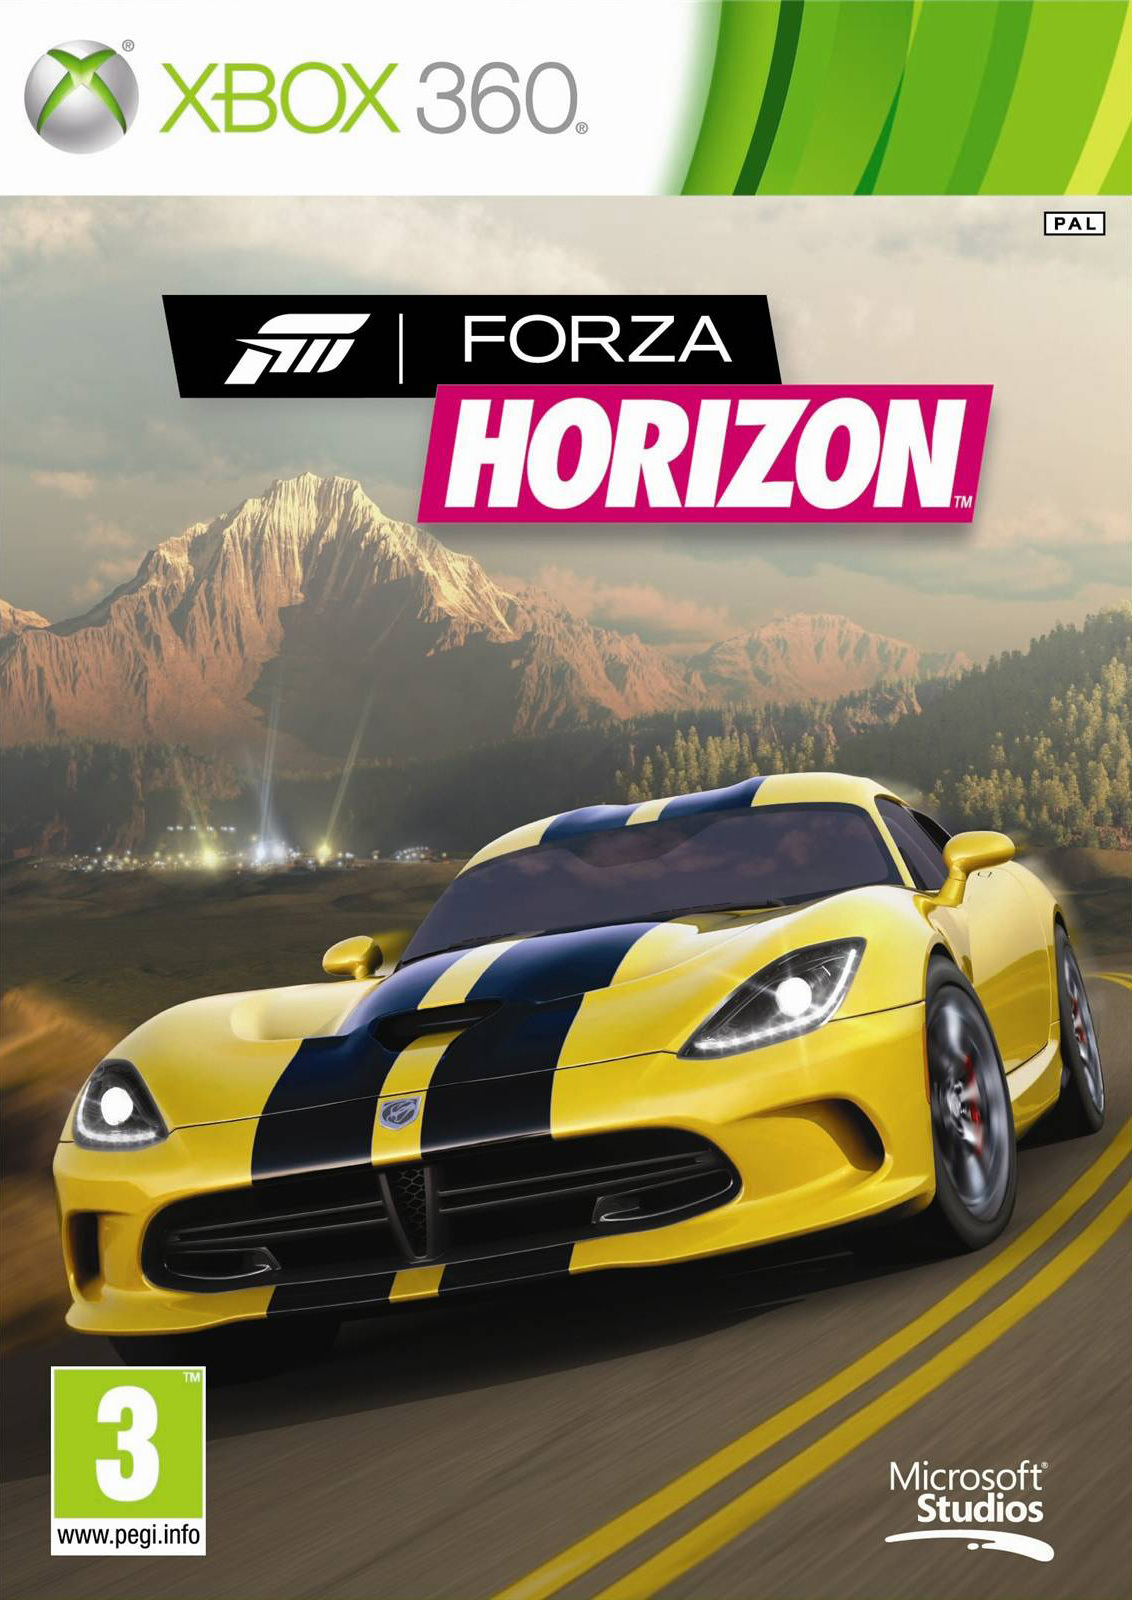 test de forza horizon xbox 360 page 1 gamalive. Black Bedroom Furniture Sets. Home Design Ideas